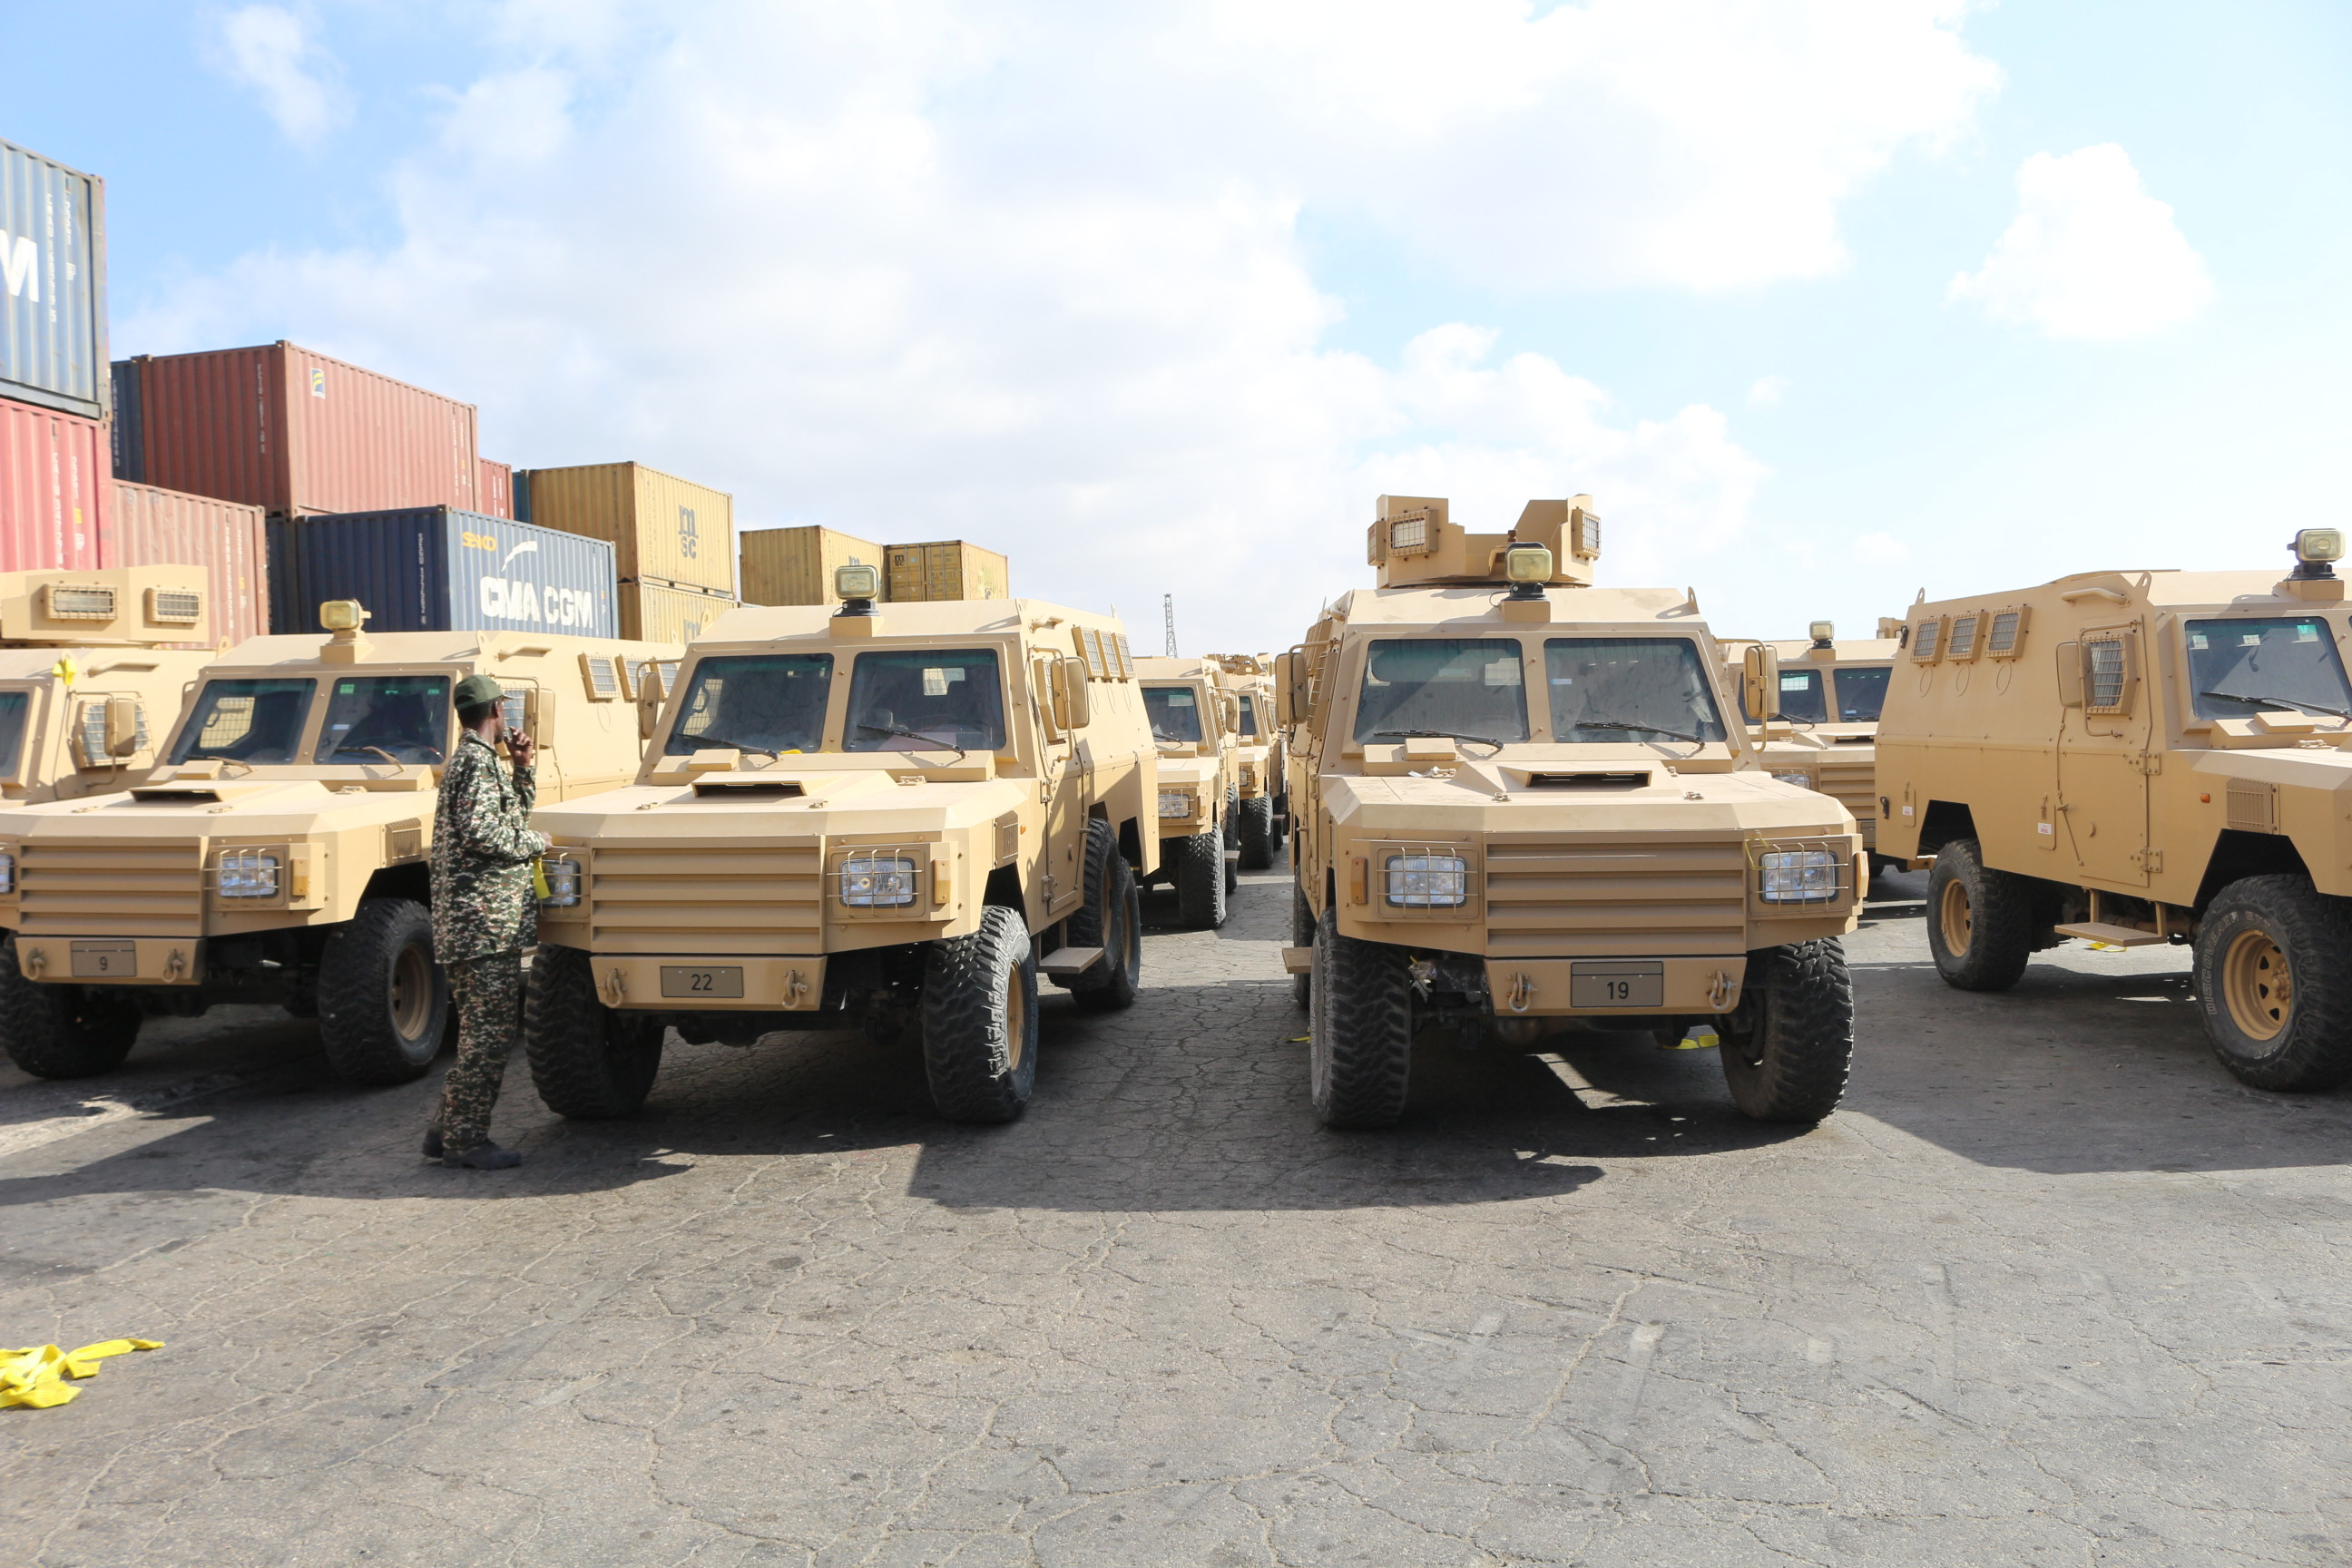 Qatar Government donated to Somalia 68 of Armor Vesicles